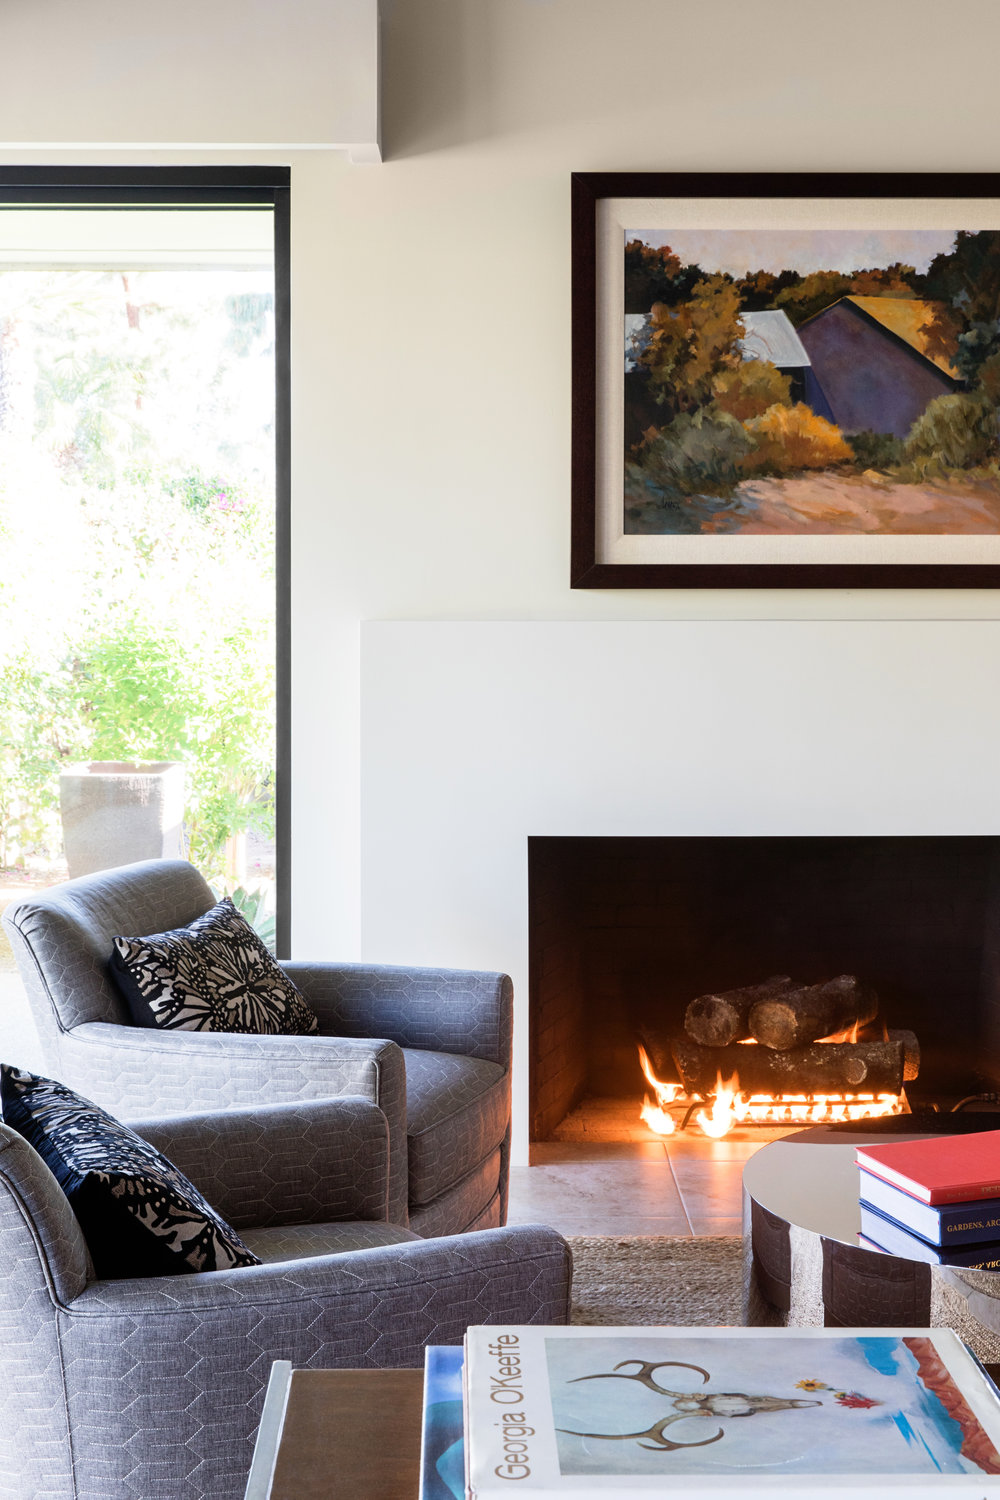 Above the modern fireplace, a painting by Sheryl Derrick, a personal friend of the homeowners, recalls warm memories in the mountains of New Mexico.